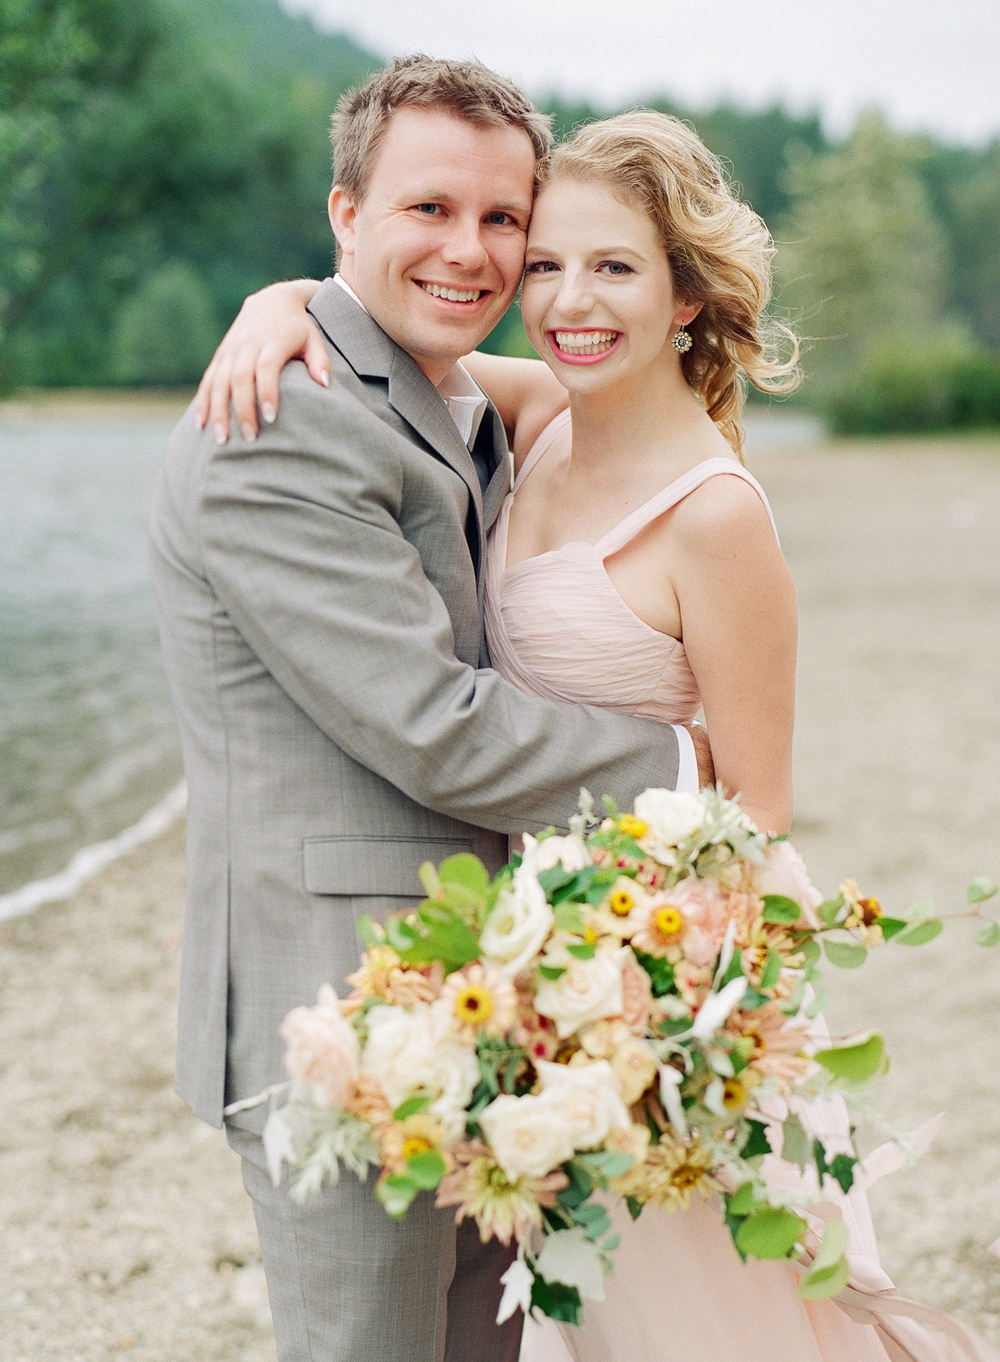 couple hugging and holding white pink yellow green bouquet